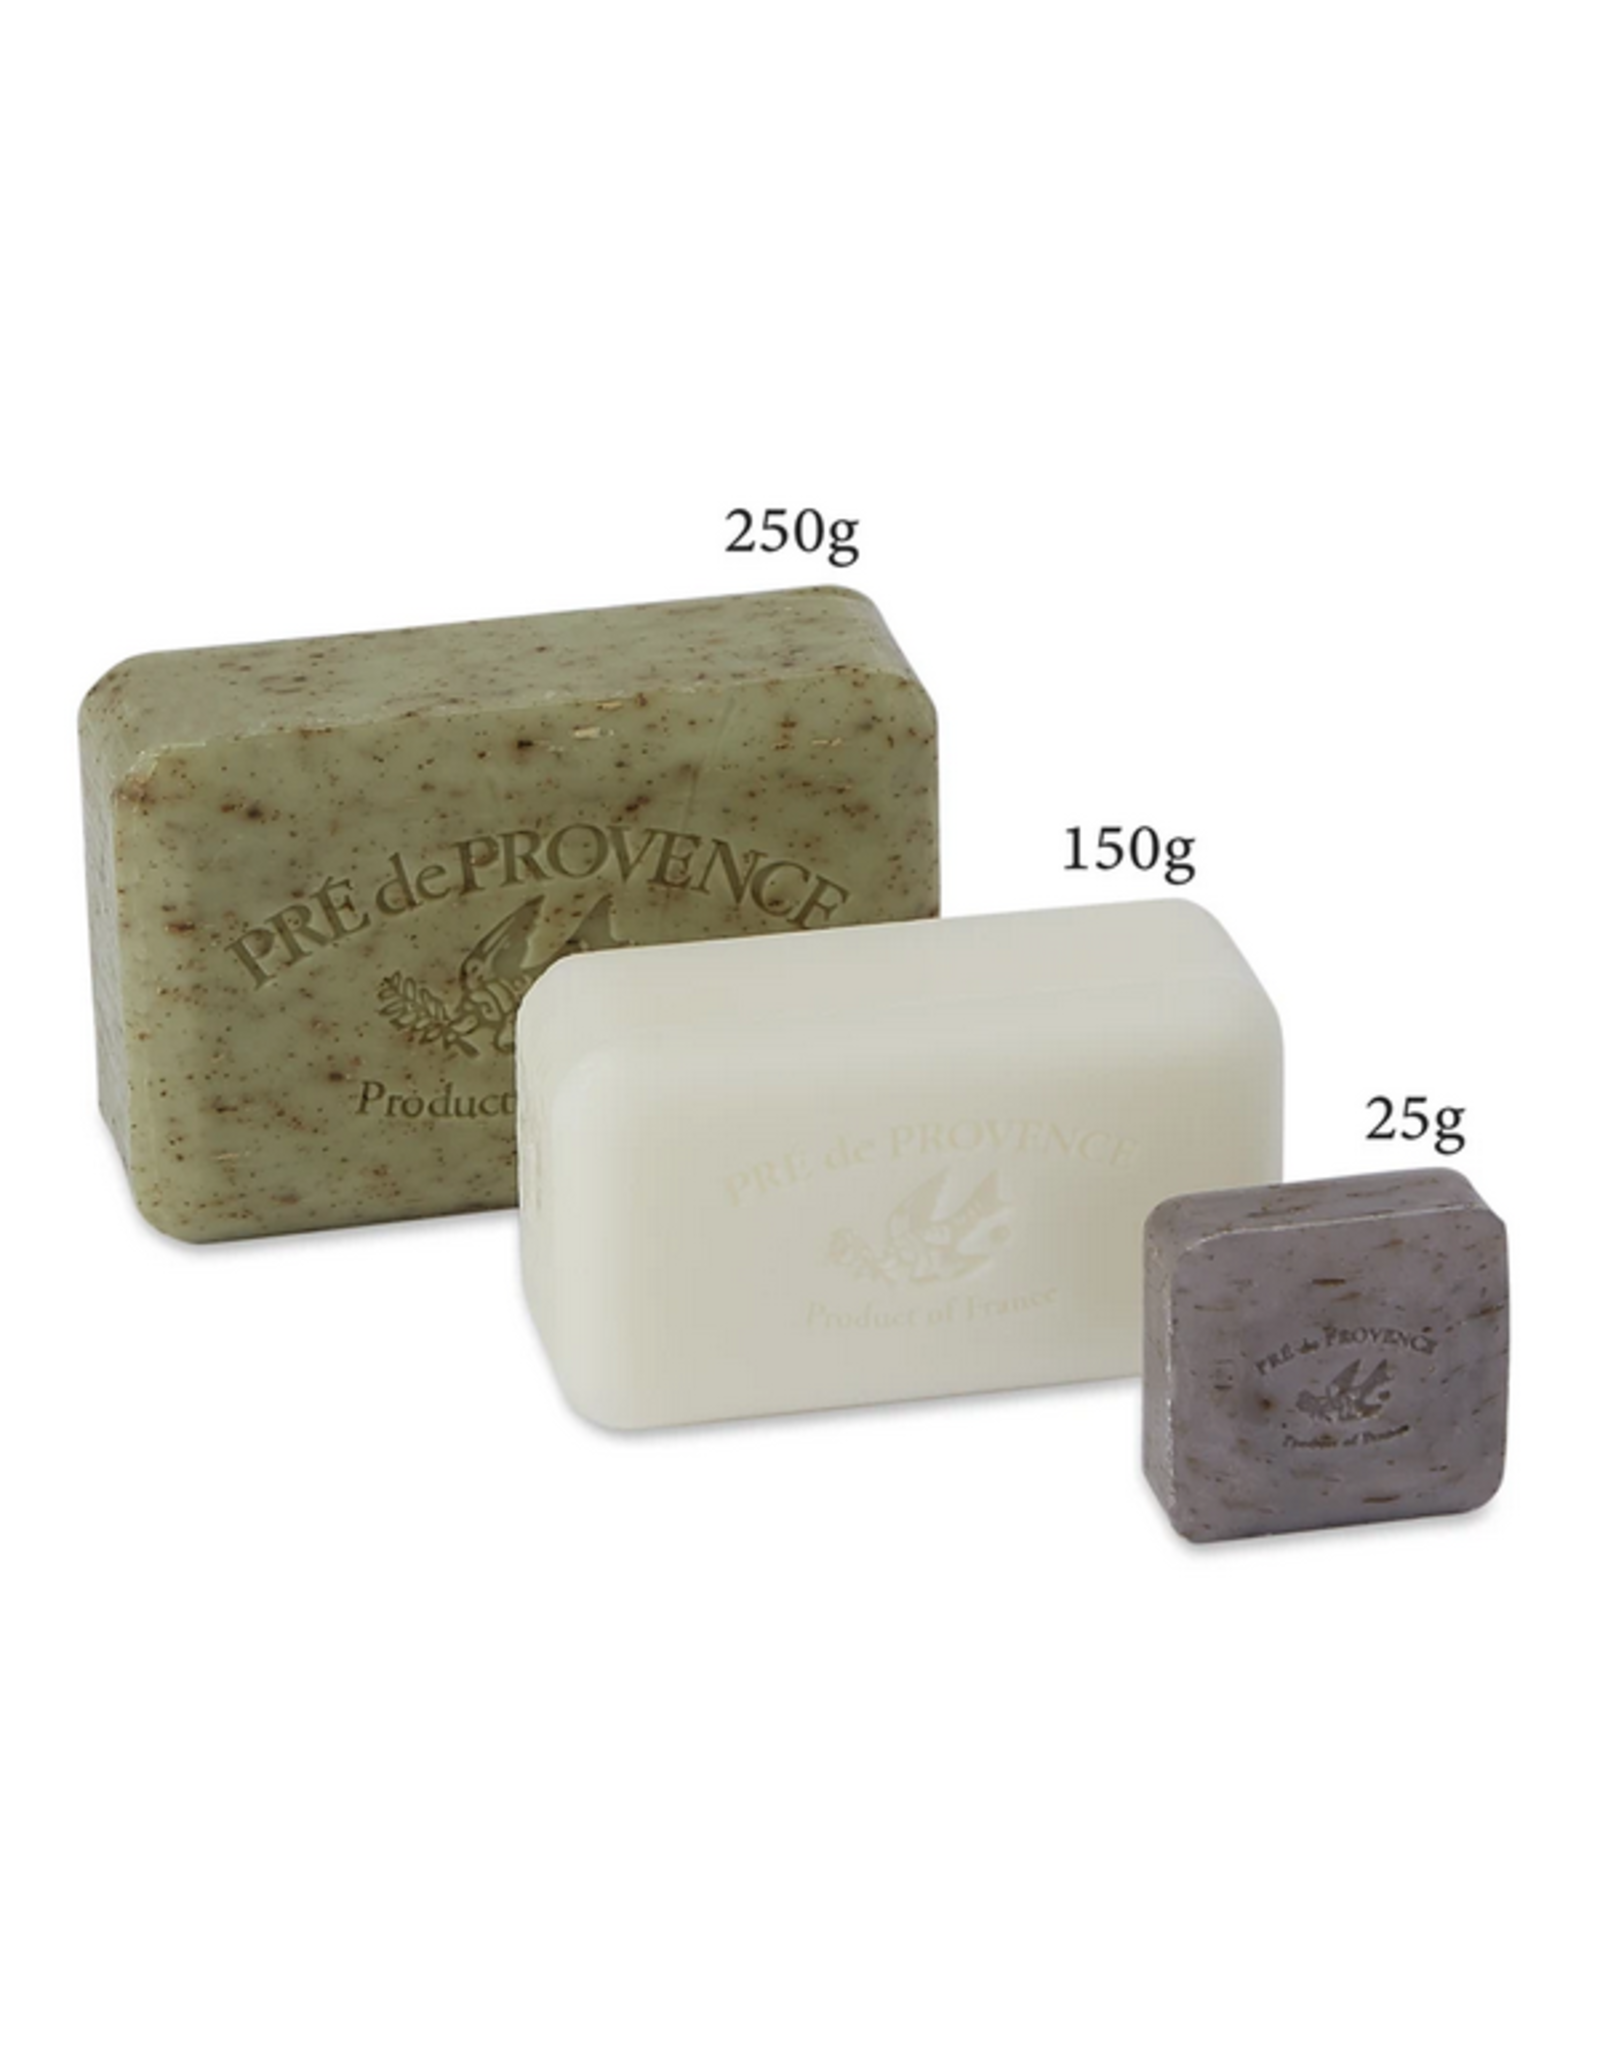 European Soaps LTD PDP-Soap 250G Honey Almond